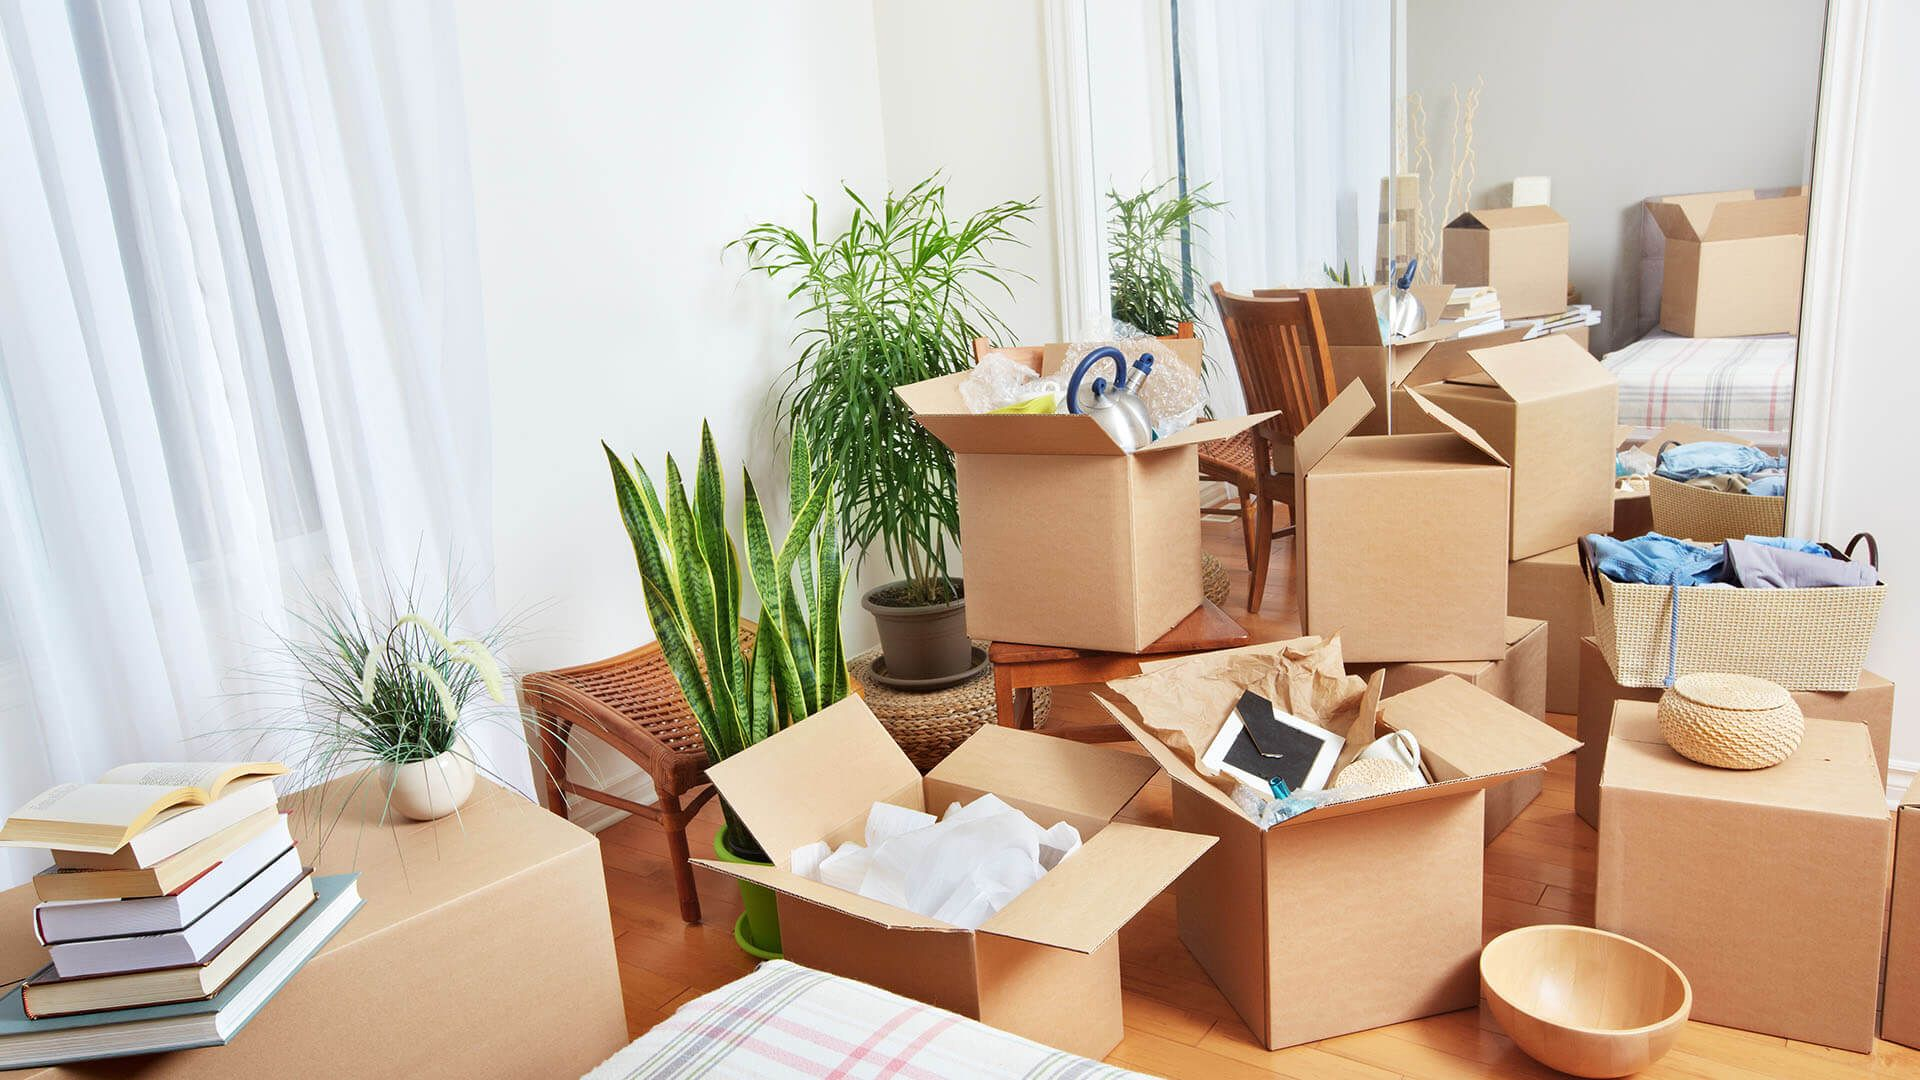 Steps in Packing Up Your Household Goods Before You Move | Furniture  removalists, Packers and movers, Moving house